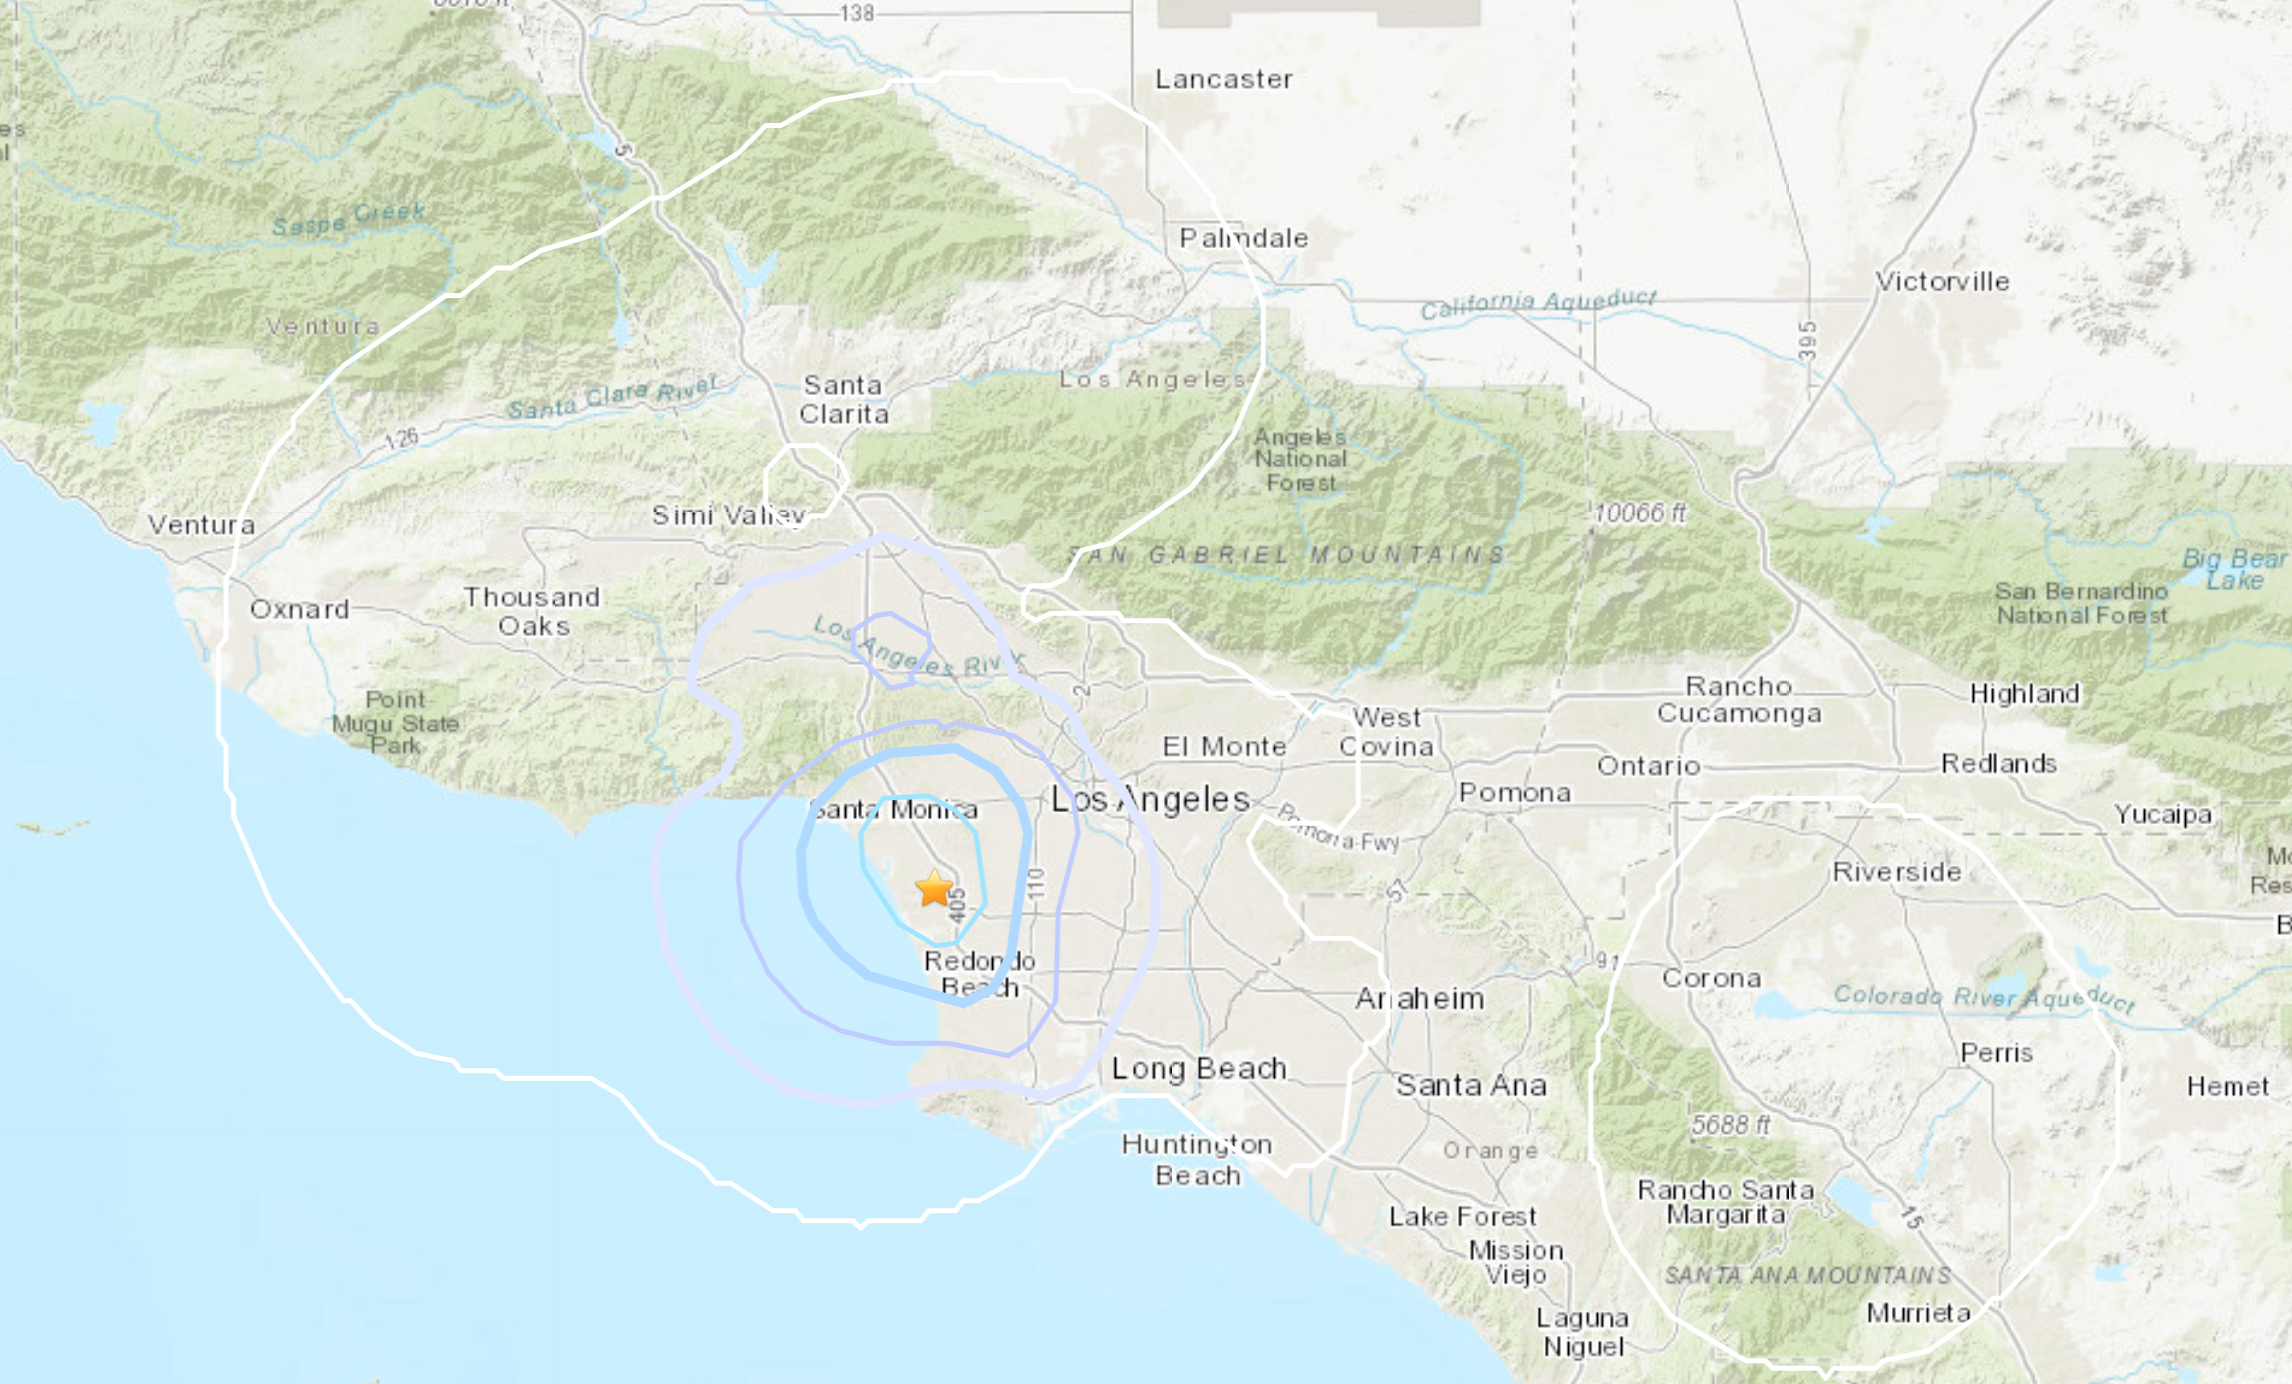 A USGS map shows the location of a magnitude 3.4 earthquake that struck near LAX at 5:08 p.m. June 23, 2021.